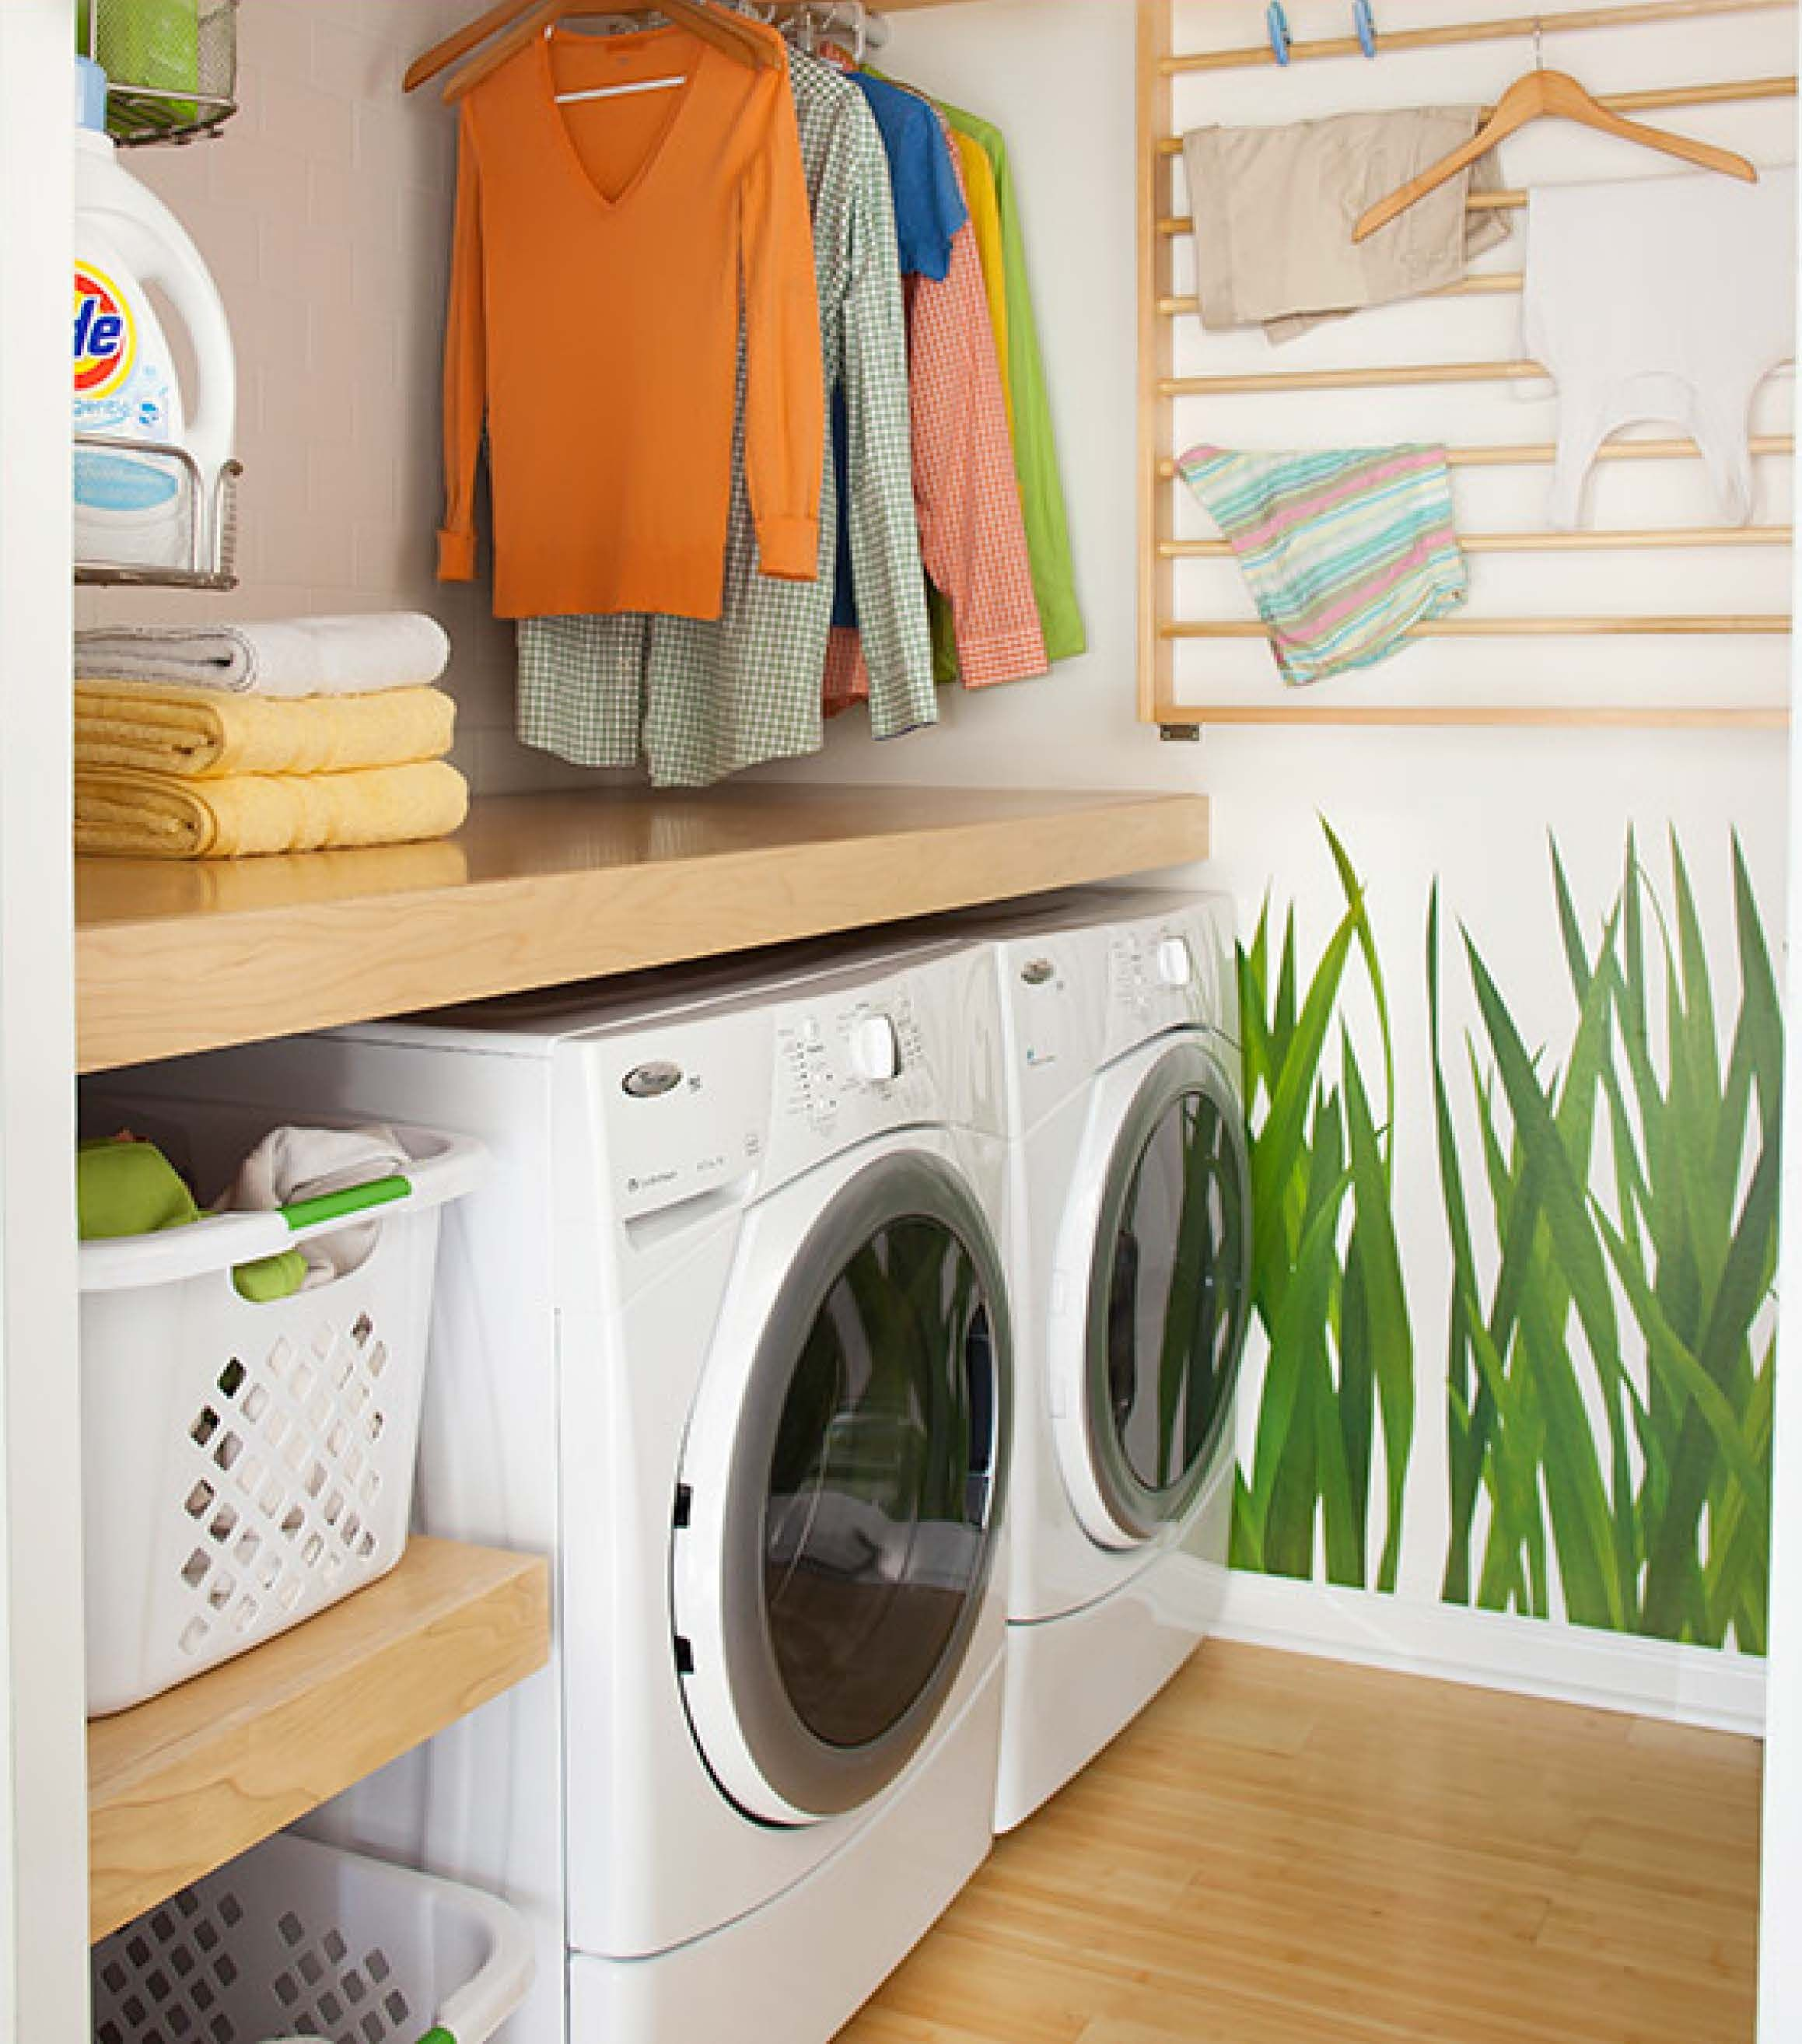 shelf for folding above washer dryer & bar above for hanging clothes